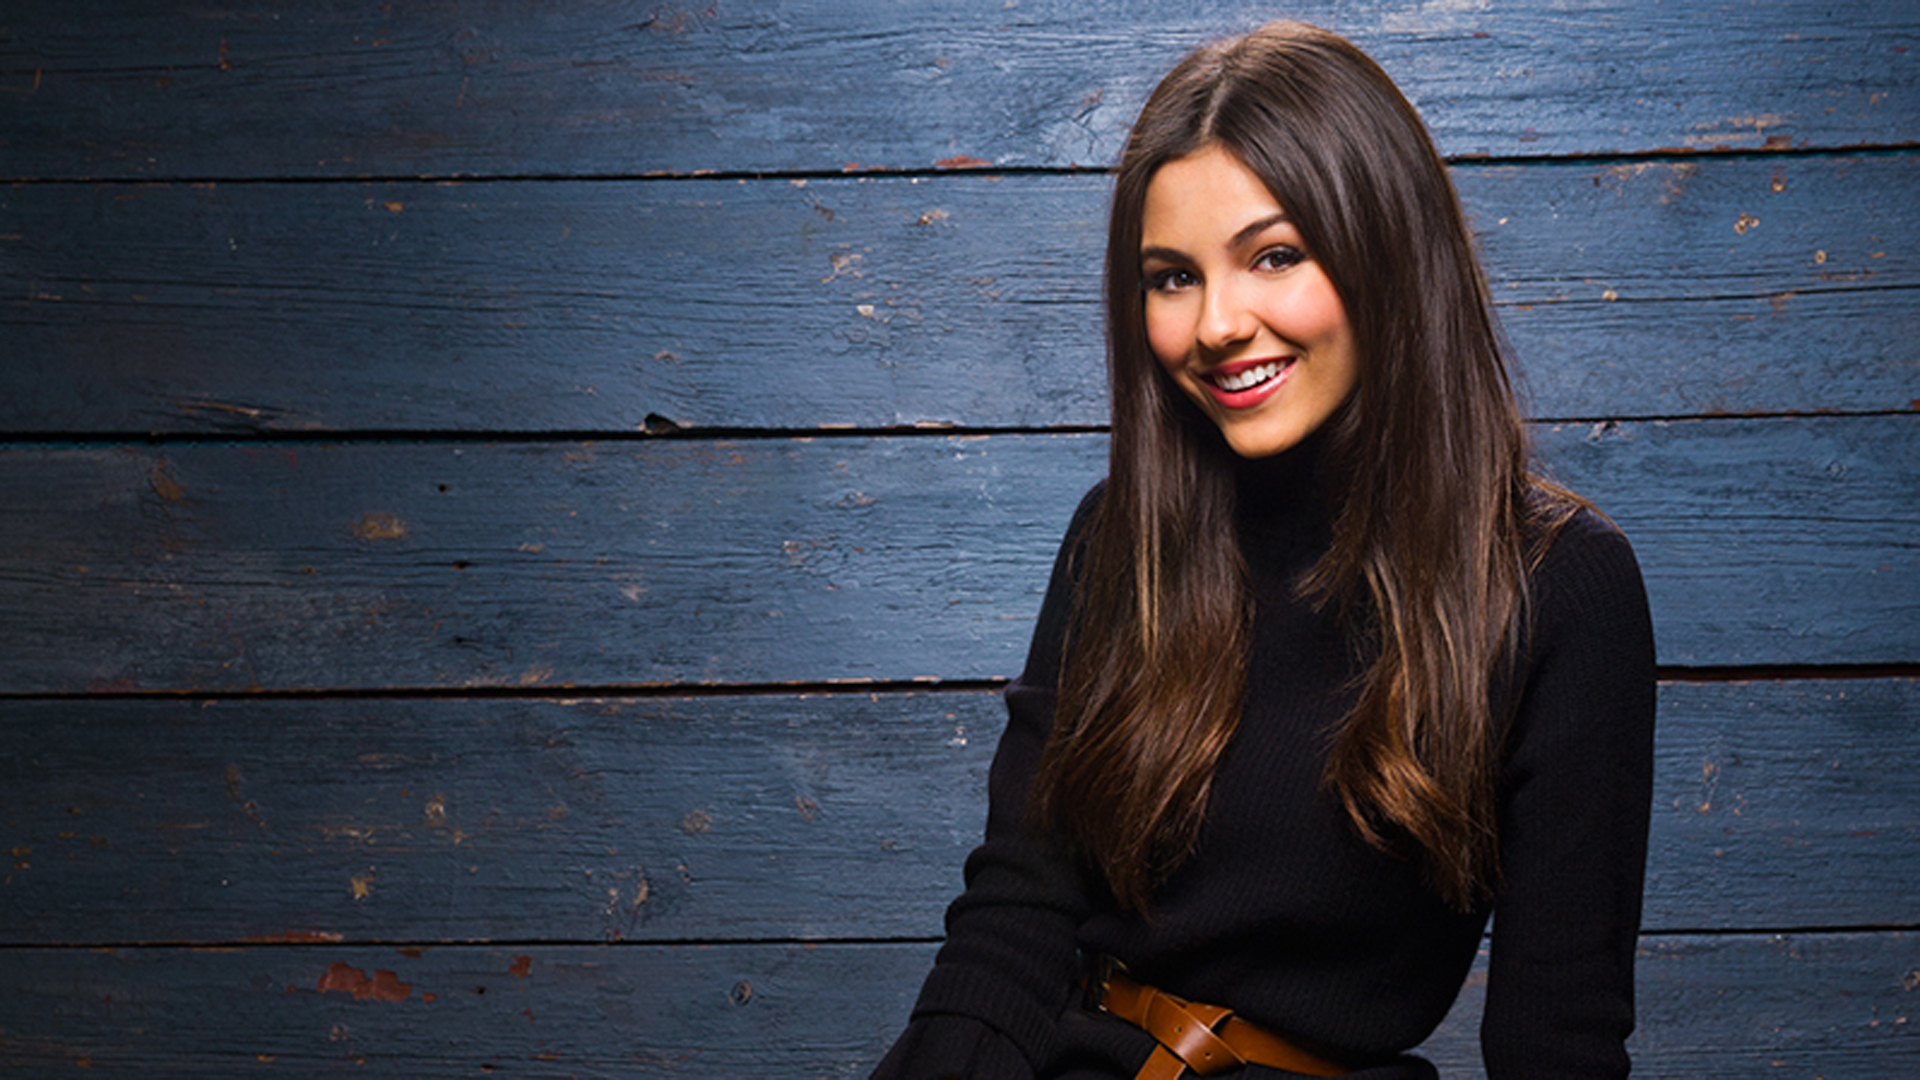 Top Victoria Justice Wallpaper Download